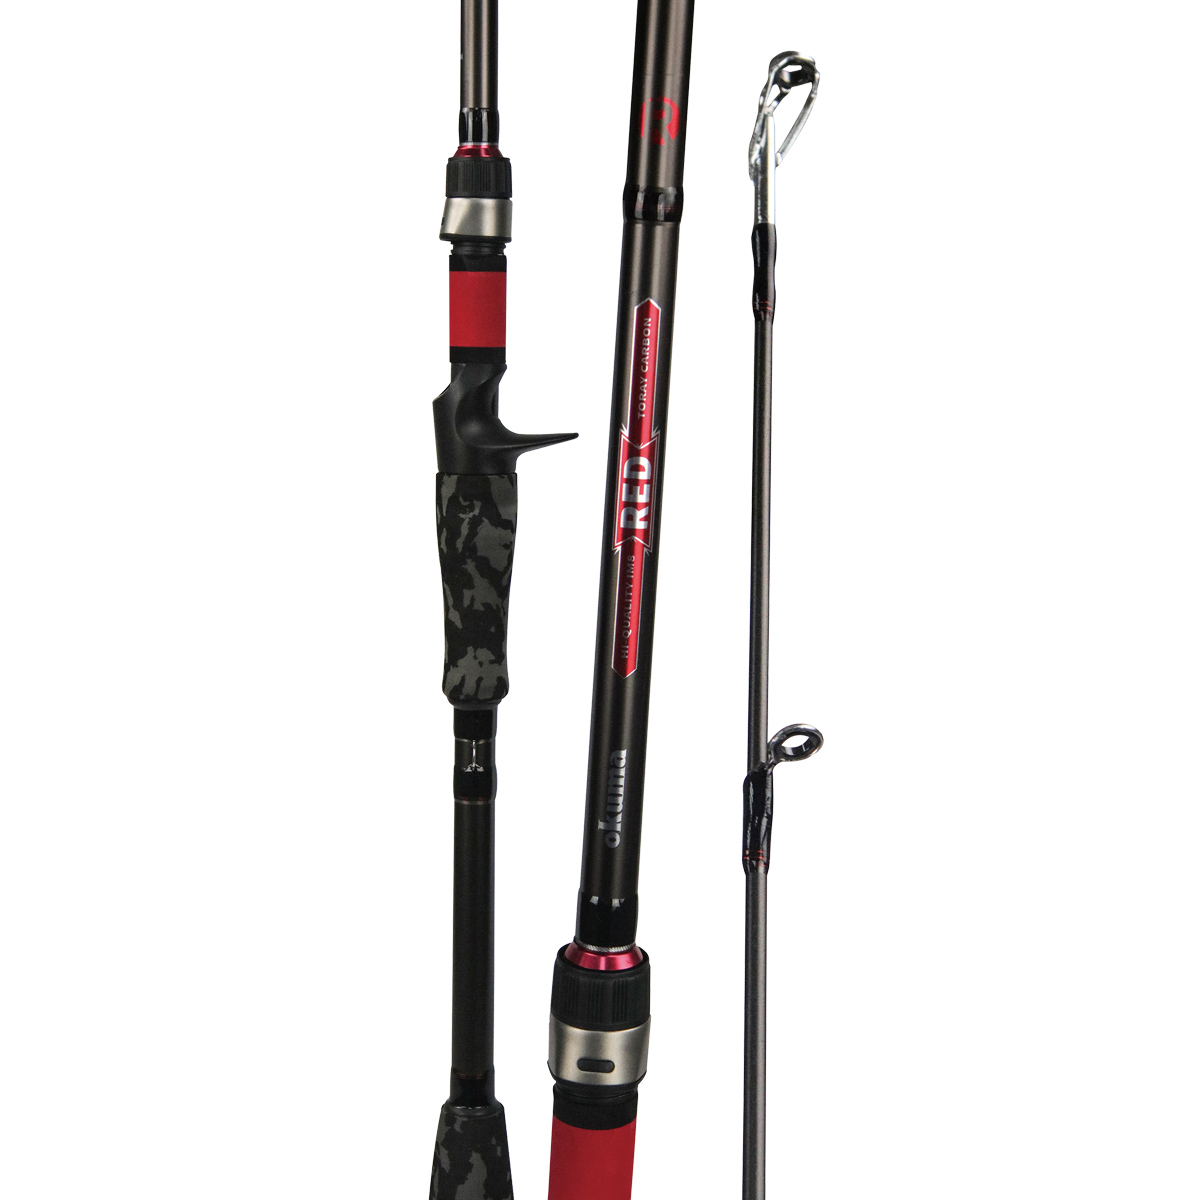 red rod okuma fishing rods and reels okuma fishing